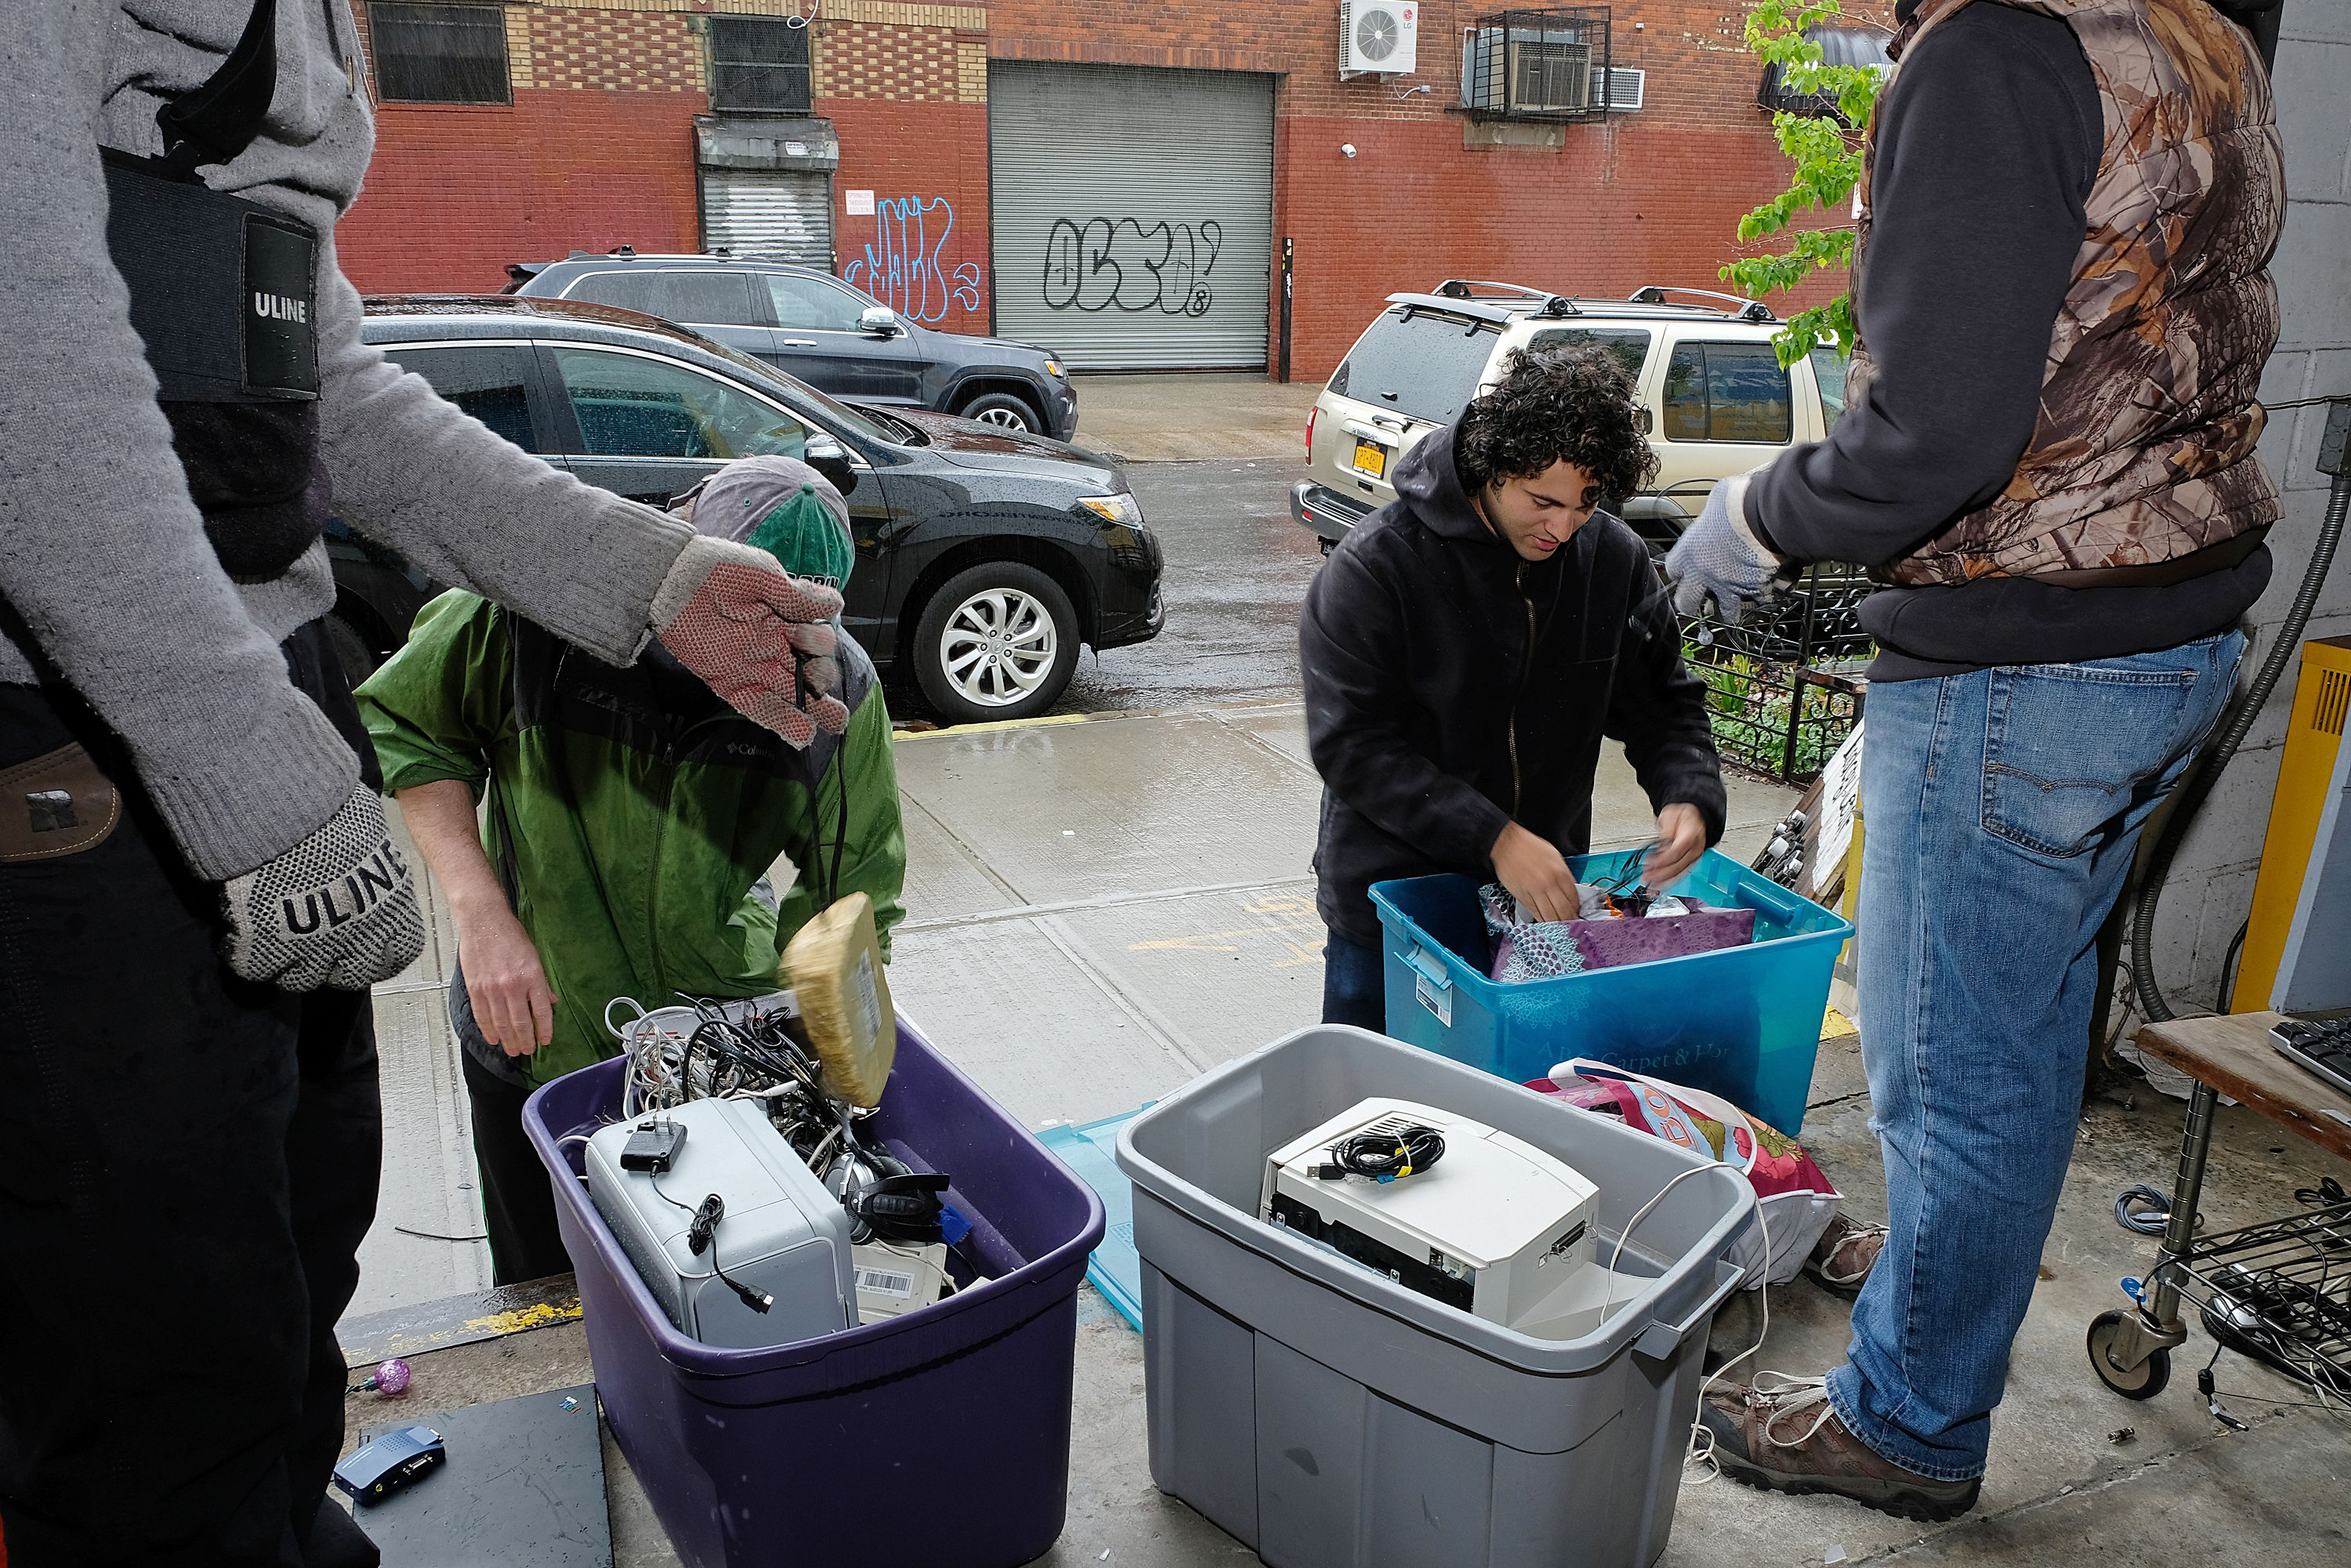 Drop off center for e-waste recycling, Gowanus E-Waste Warehouse, Brooklyn, New York, USA